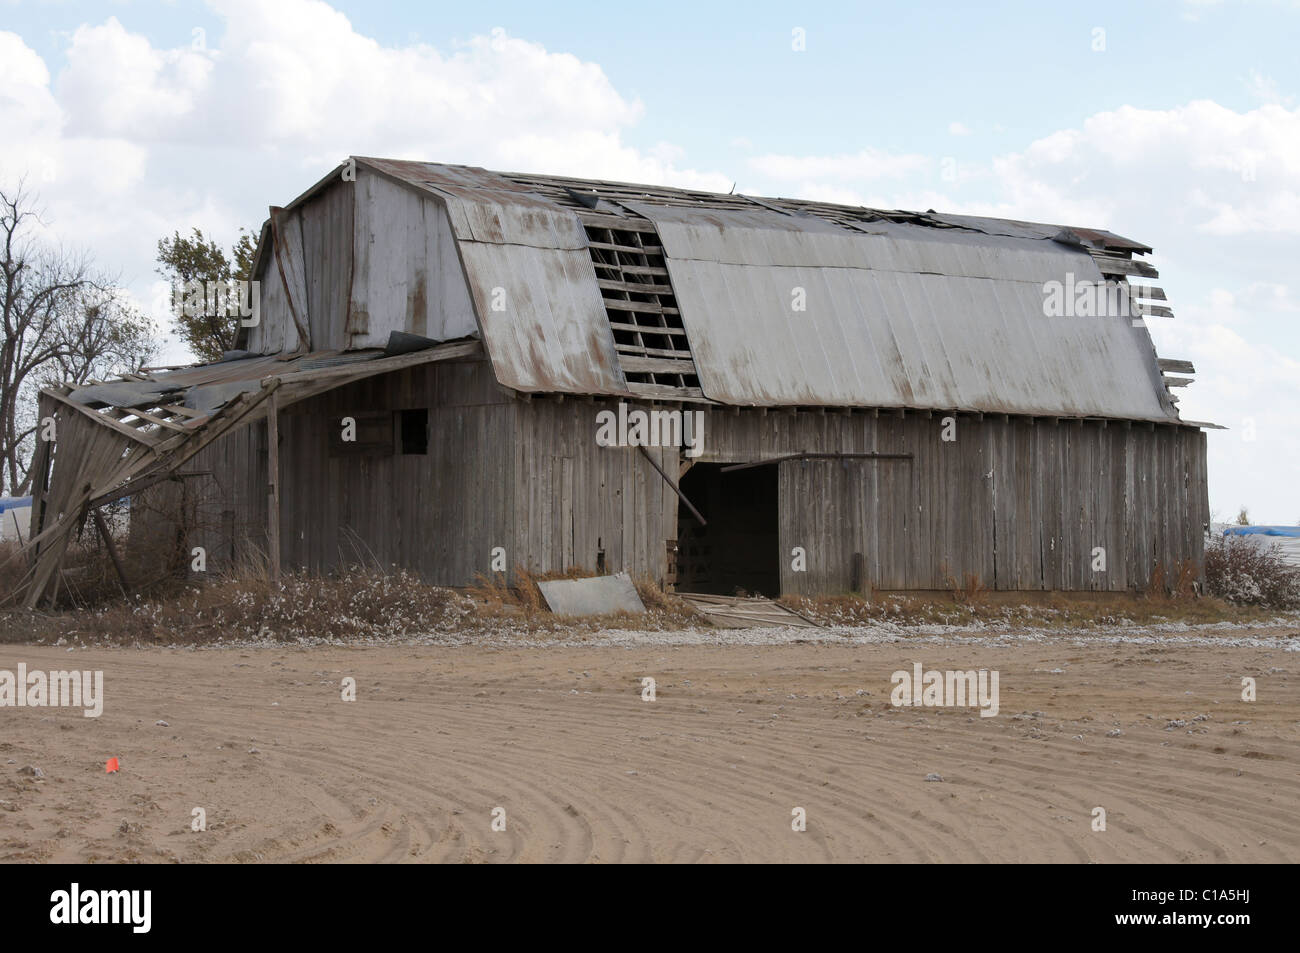 Photograph of an old barn in Arkansas needing repair, Sandy foreground with a blue sky and cotton modules in the - Stock Image